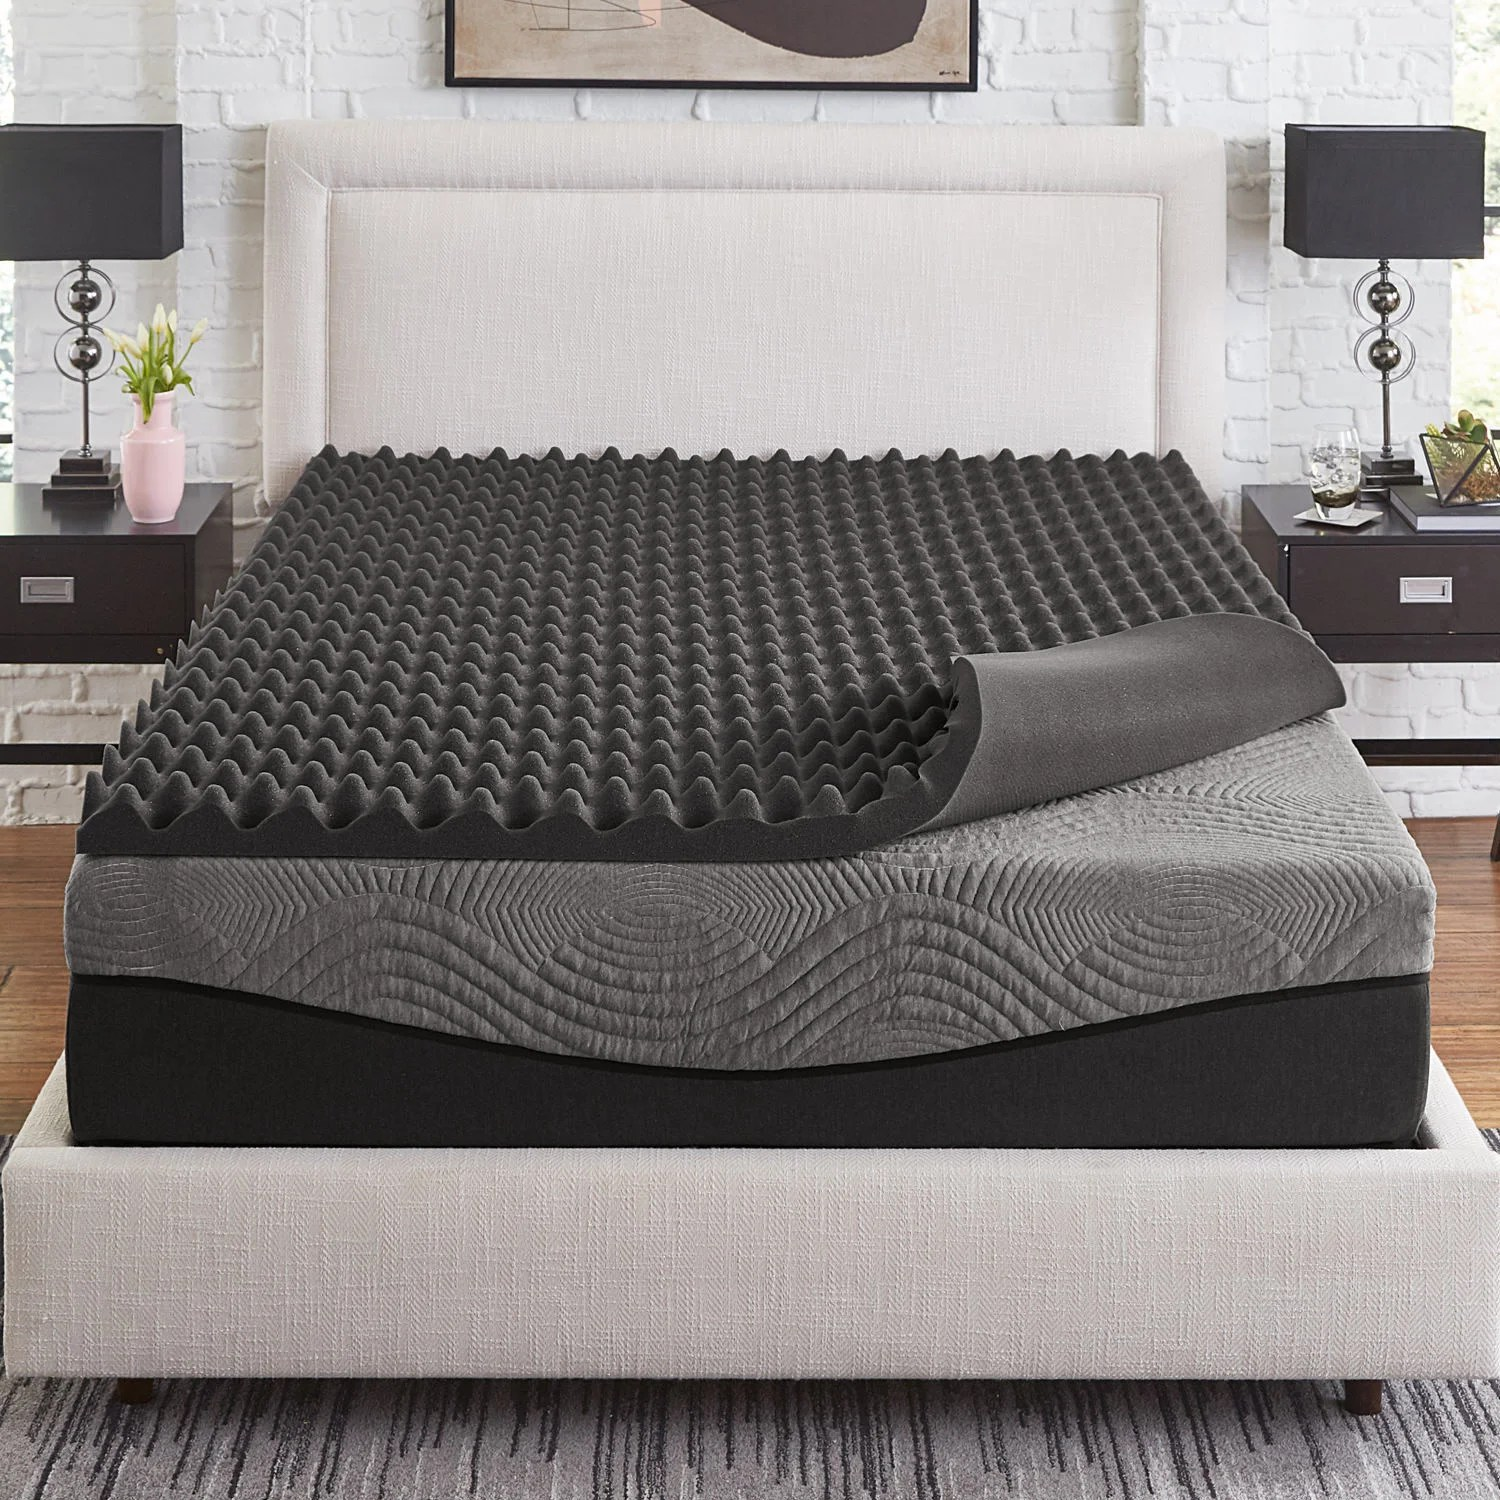 Memory Foam Mattress Too Firm Slumber Solutions Active 3 Inch Big Bump Charcoal Memory Foam Topper